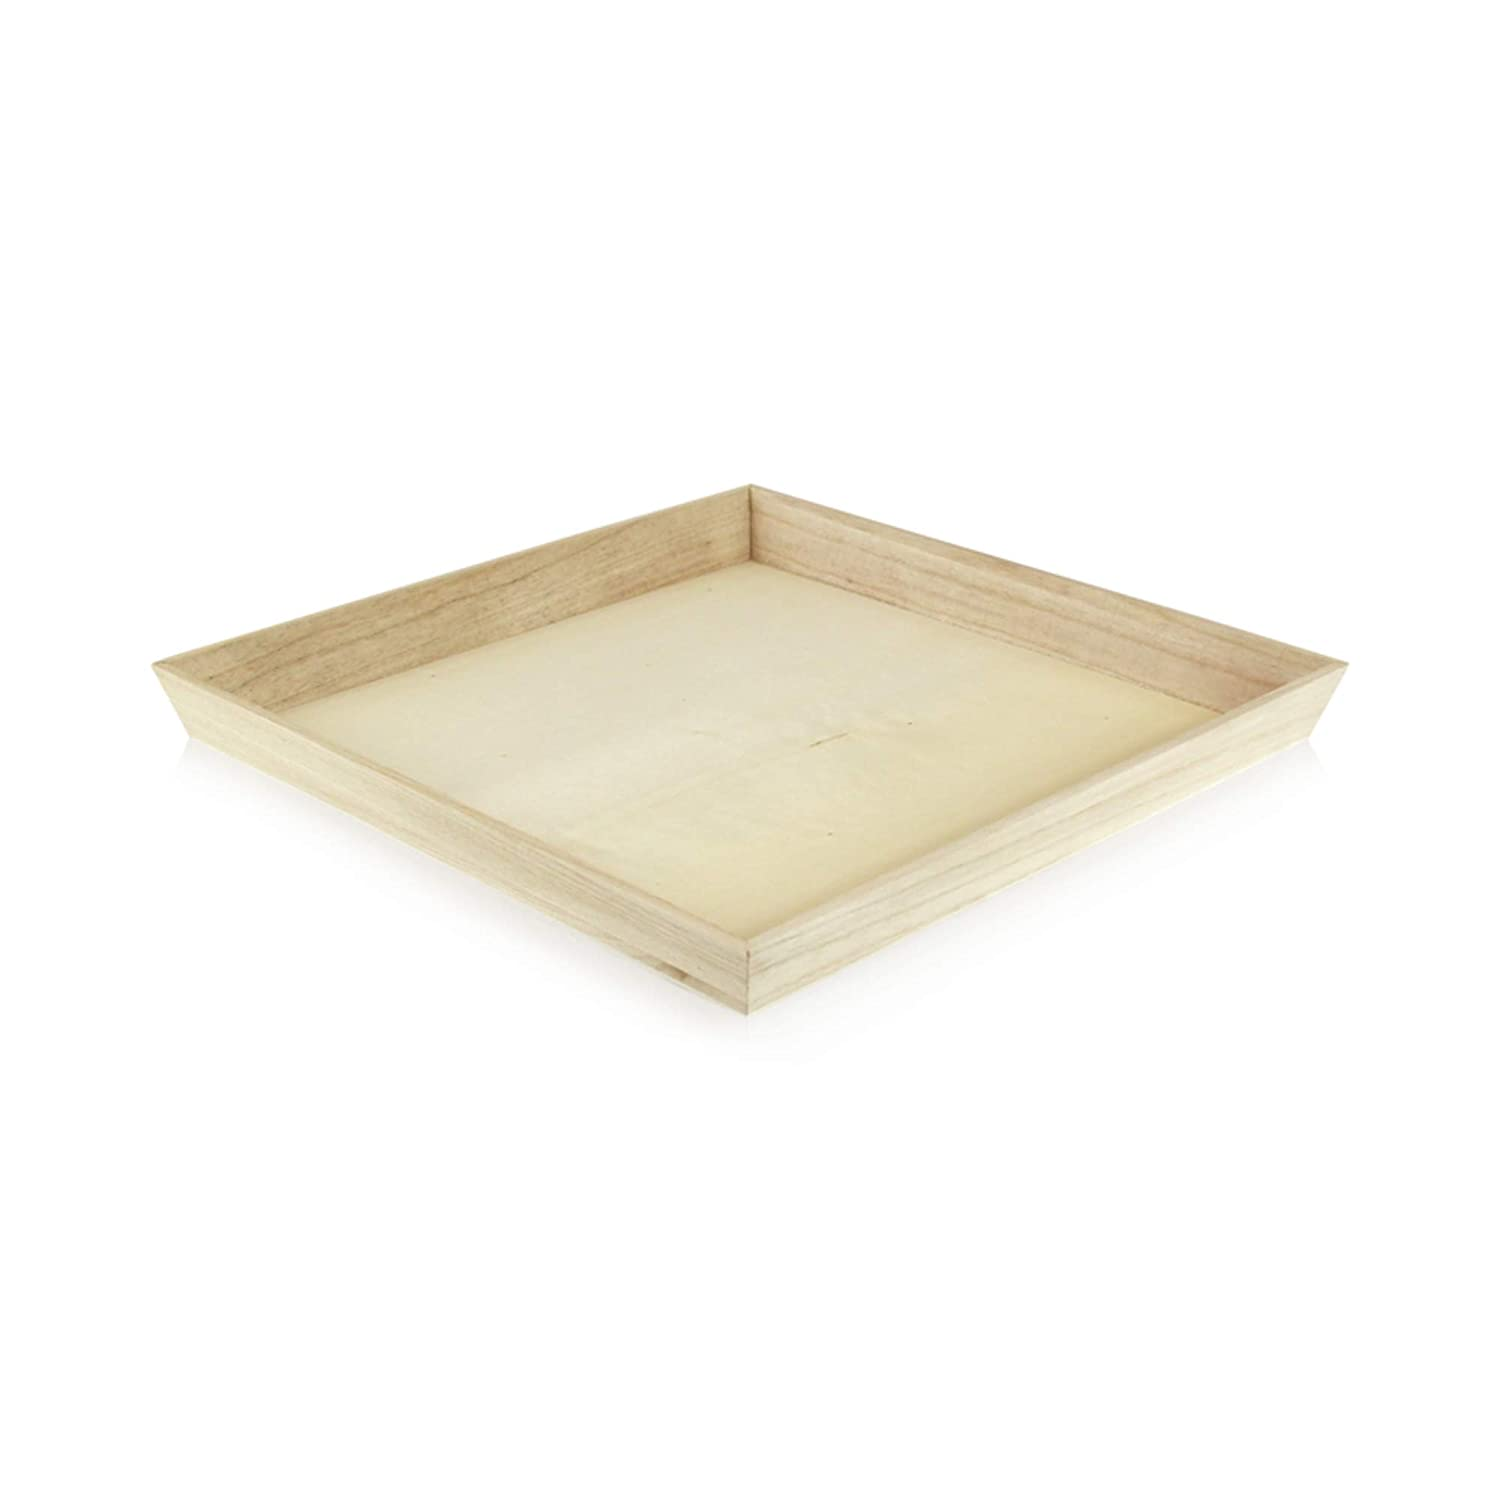 Noah31 Heavy Duty Wooden Tray (Case of 10), PacknWood - Biodegradable Serving Wood Table Trays (13.75